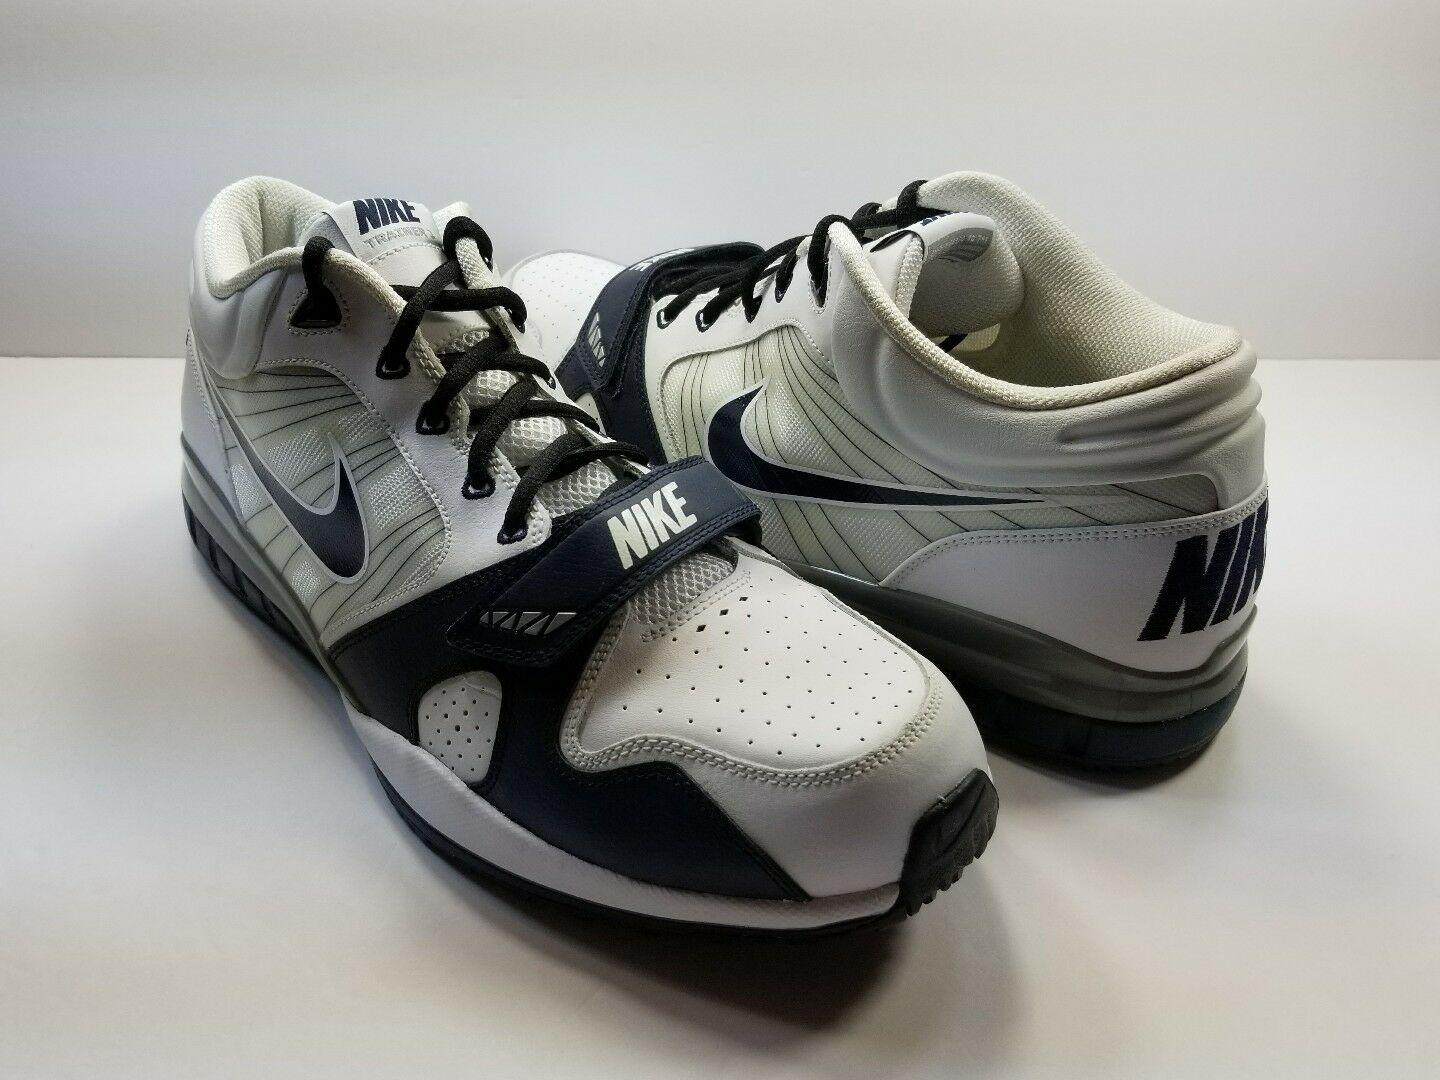 Nike Trainer 1 7V7 White/Navy/Silver Mens Sneakers - Size 15